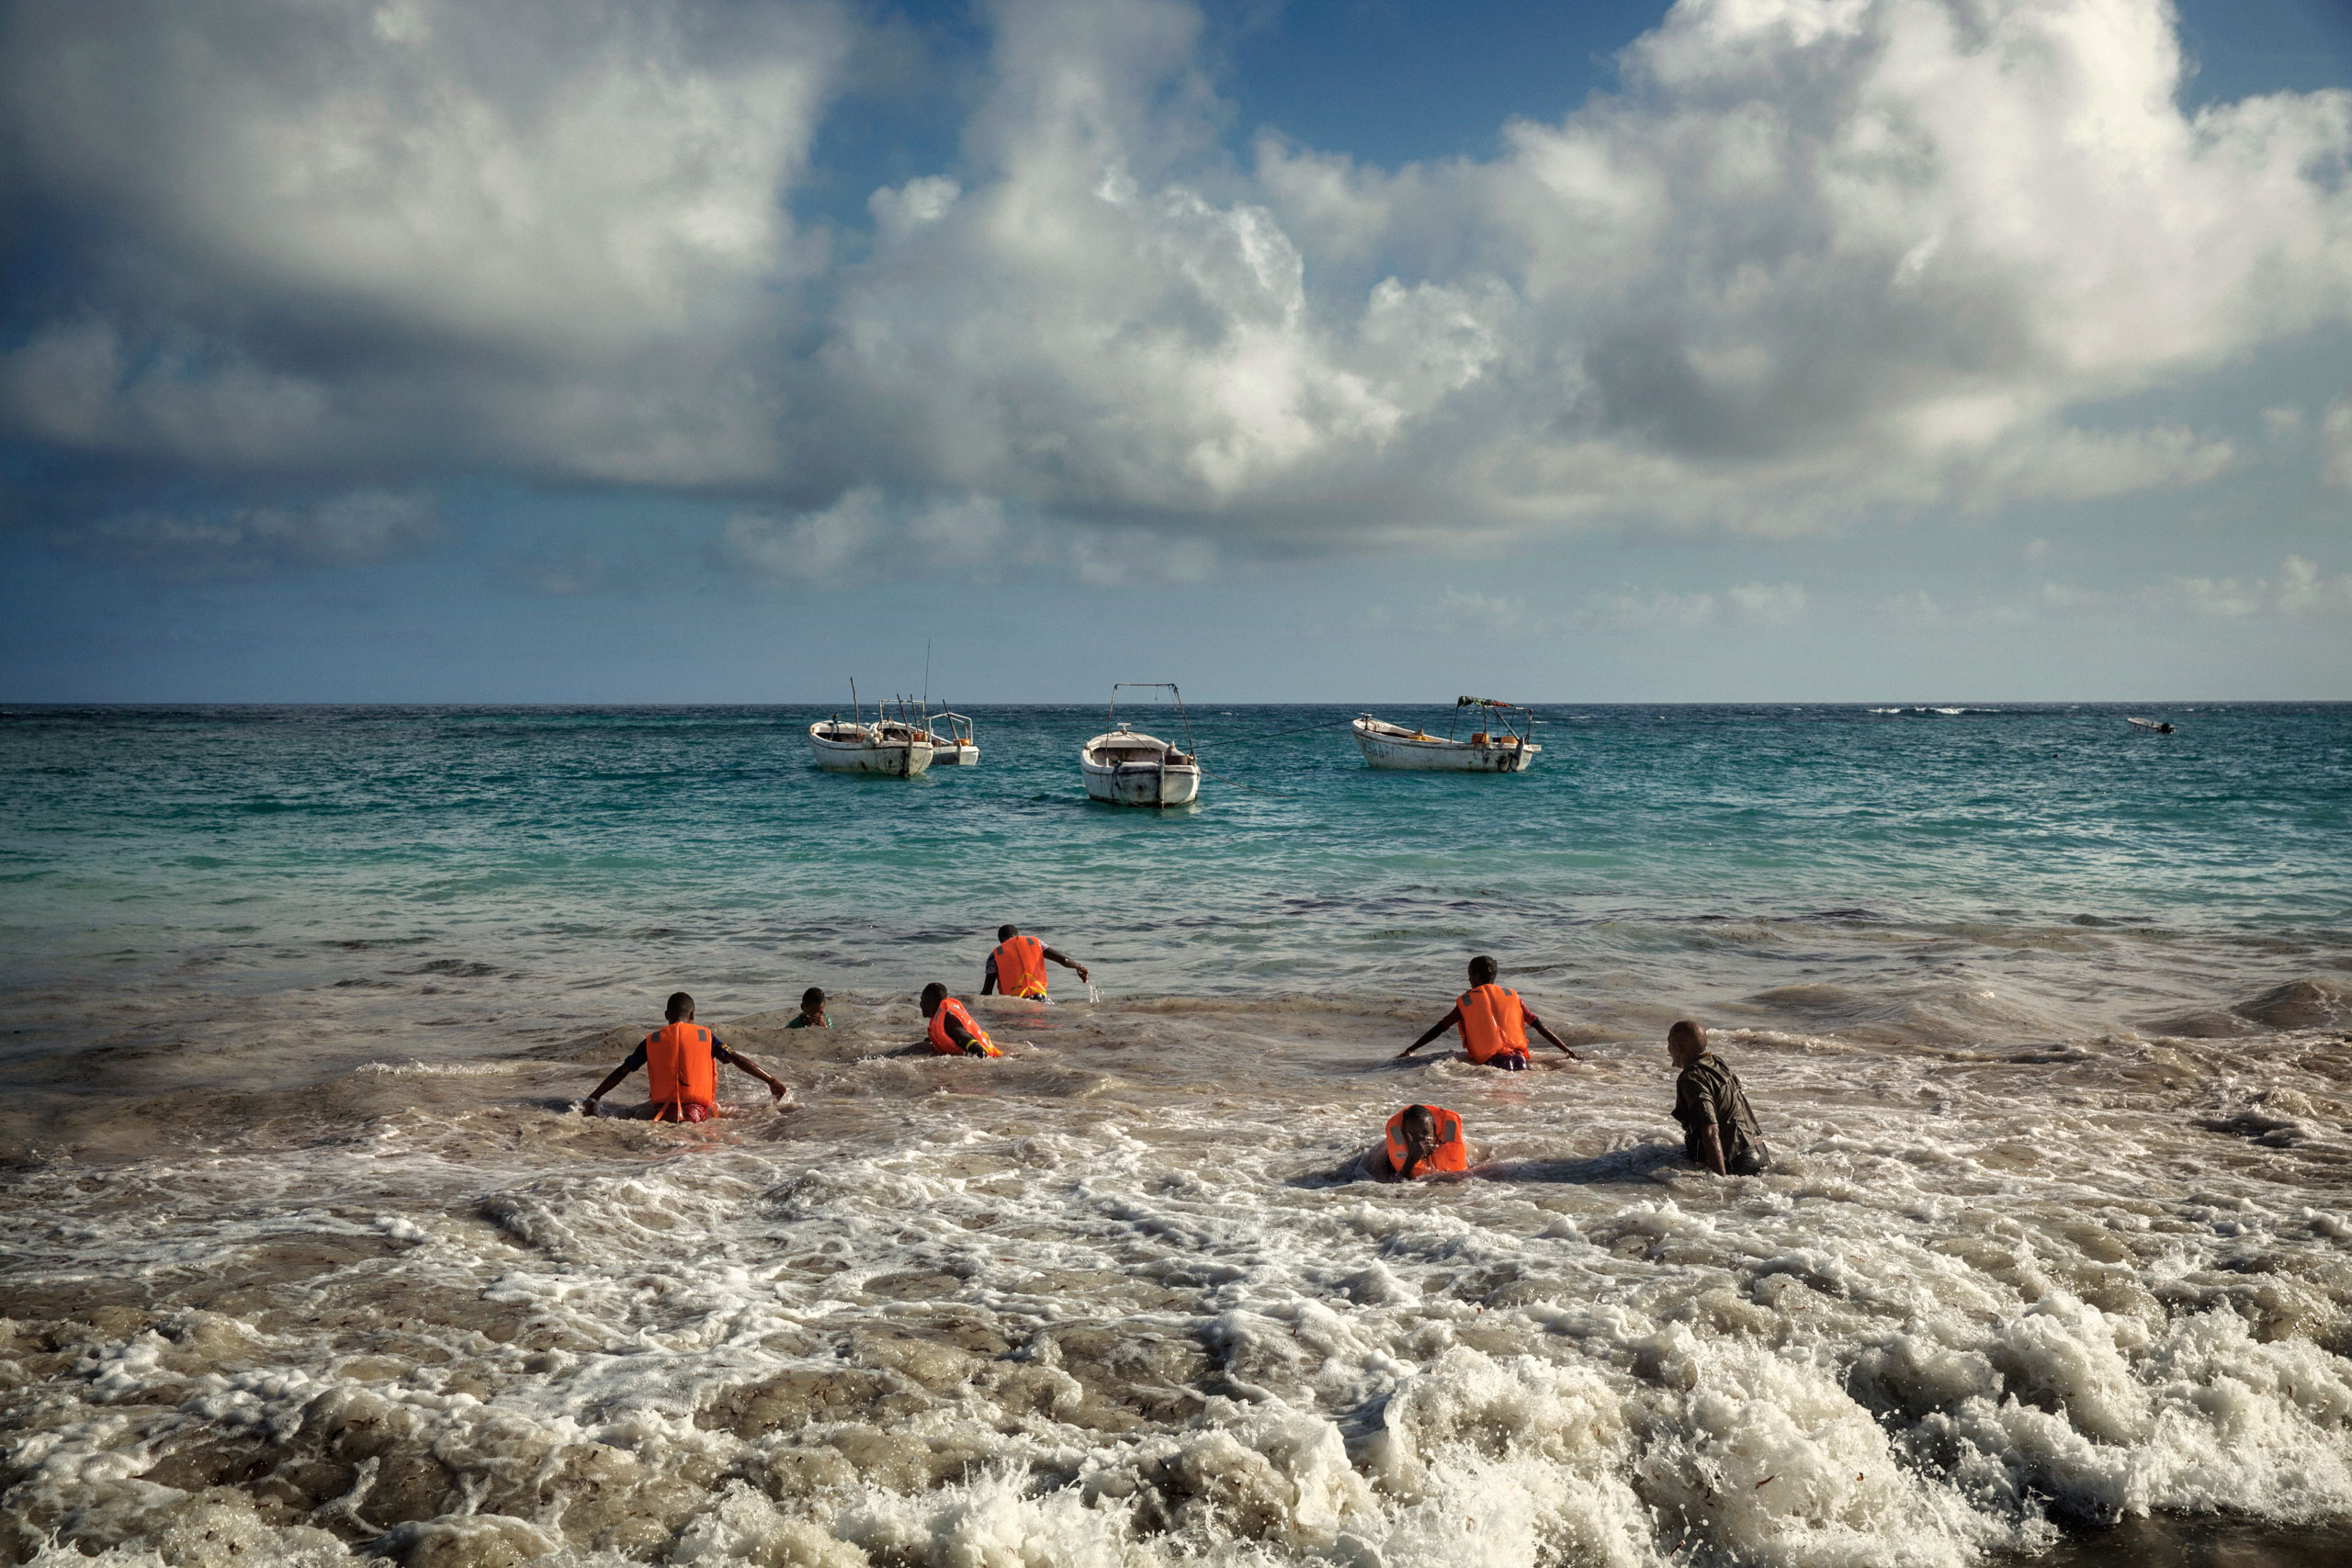 Young men learn how to swim in the seacoast Abdiaziz District in the southeastern Banaadir region of Somalia, as part of a program by the Fishing Training Center, founded by Unicef and N.R.C. and run by local organizations. Mogadishu, Somalia. October 12, 2015.